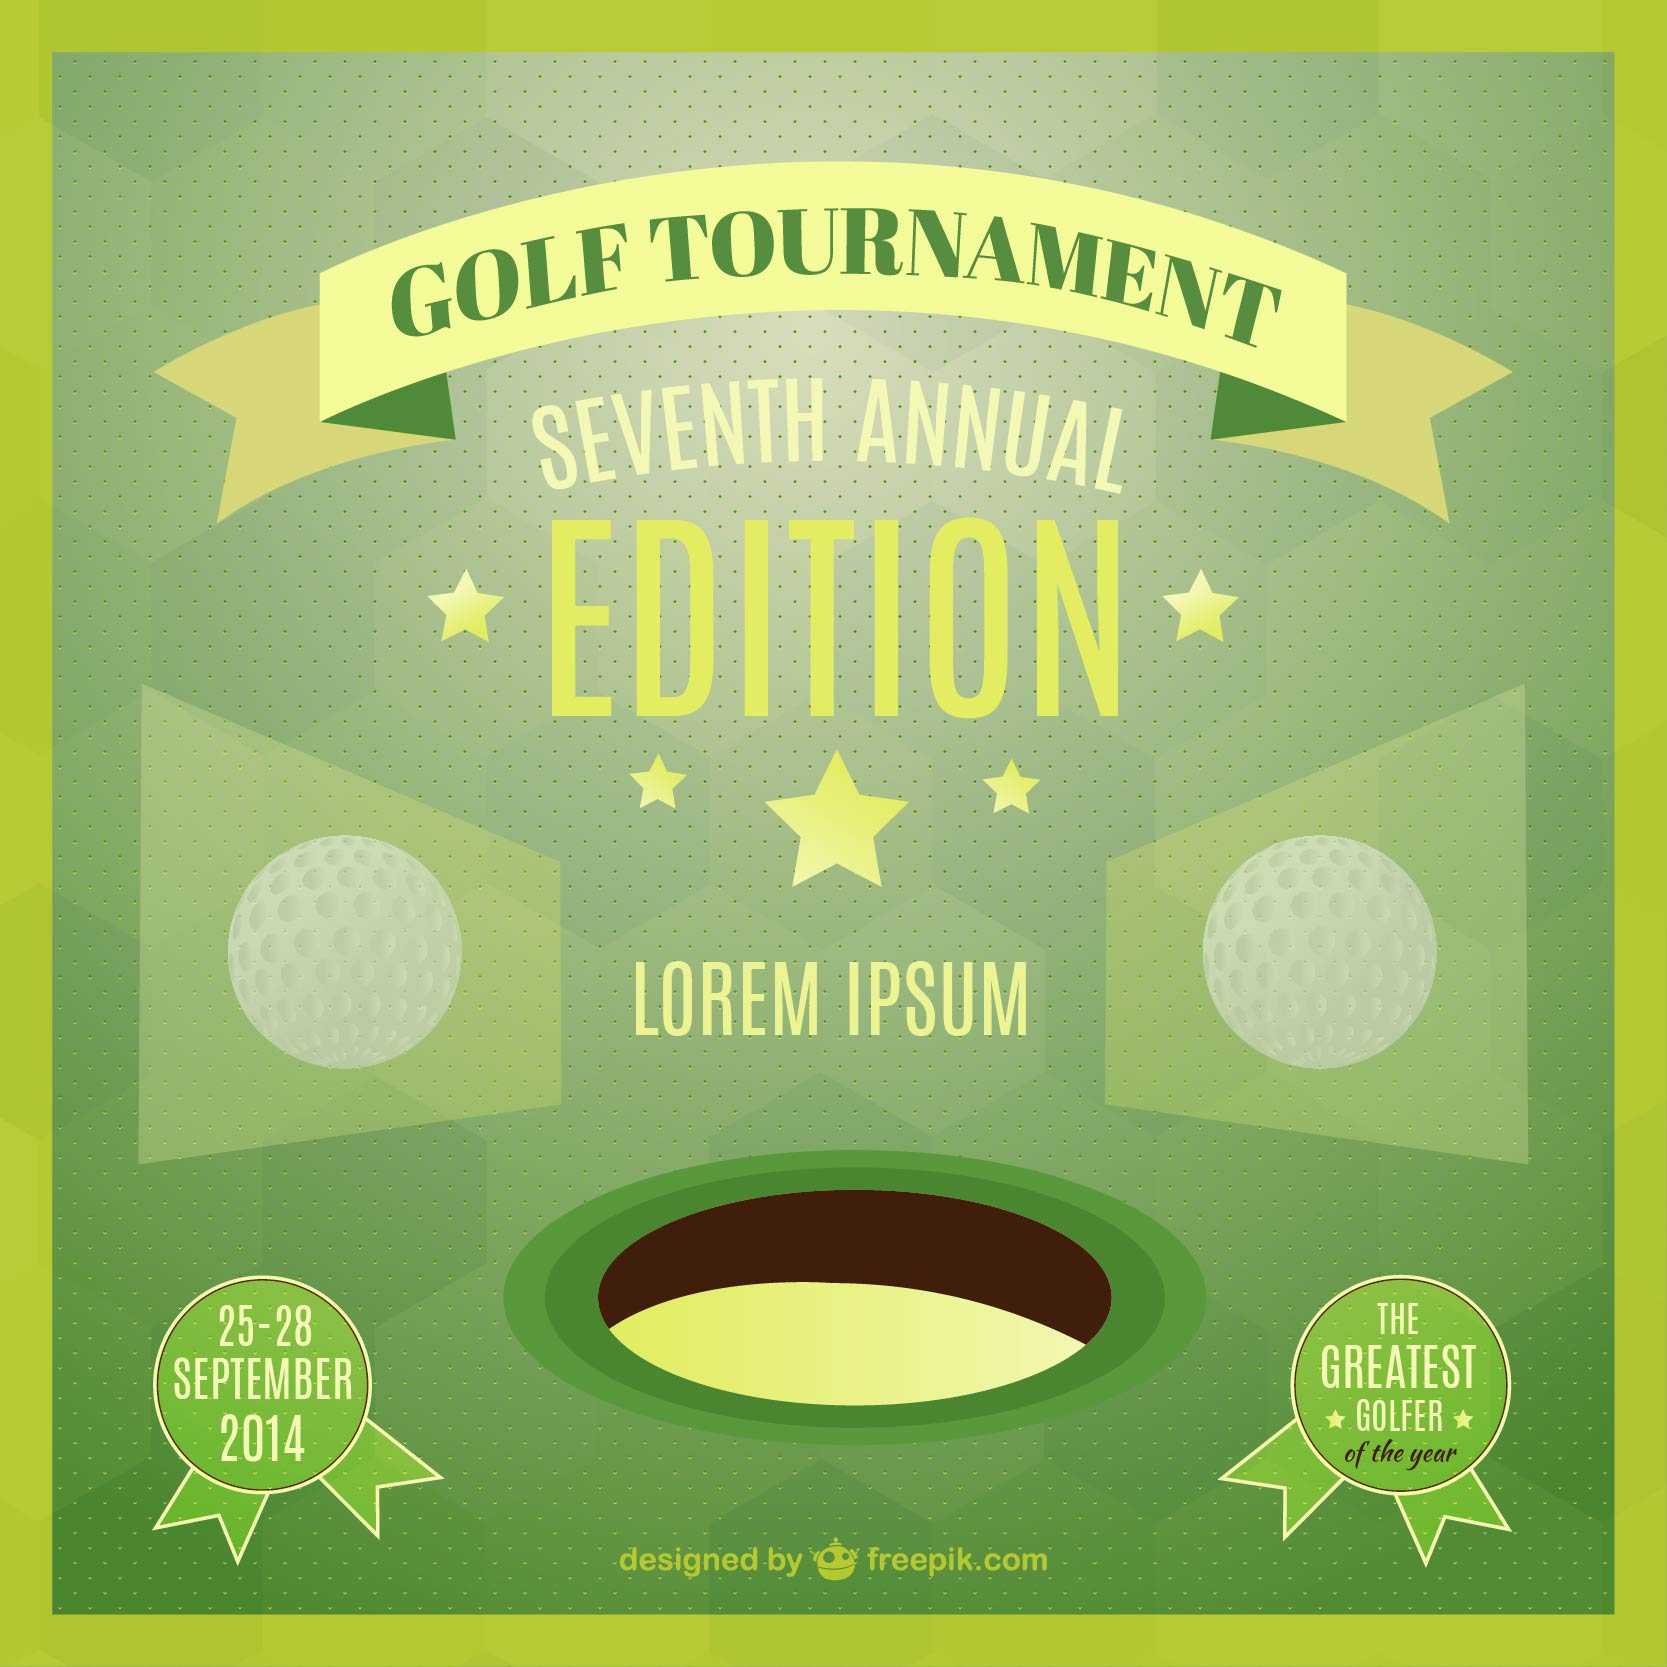 golf tour nt flyer templates fundraiser charity golf flyer template 1